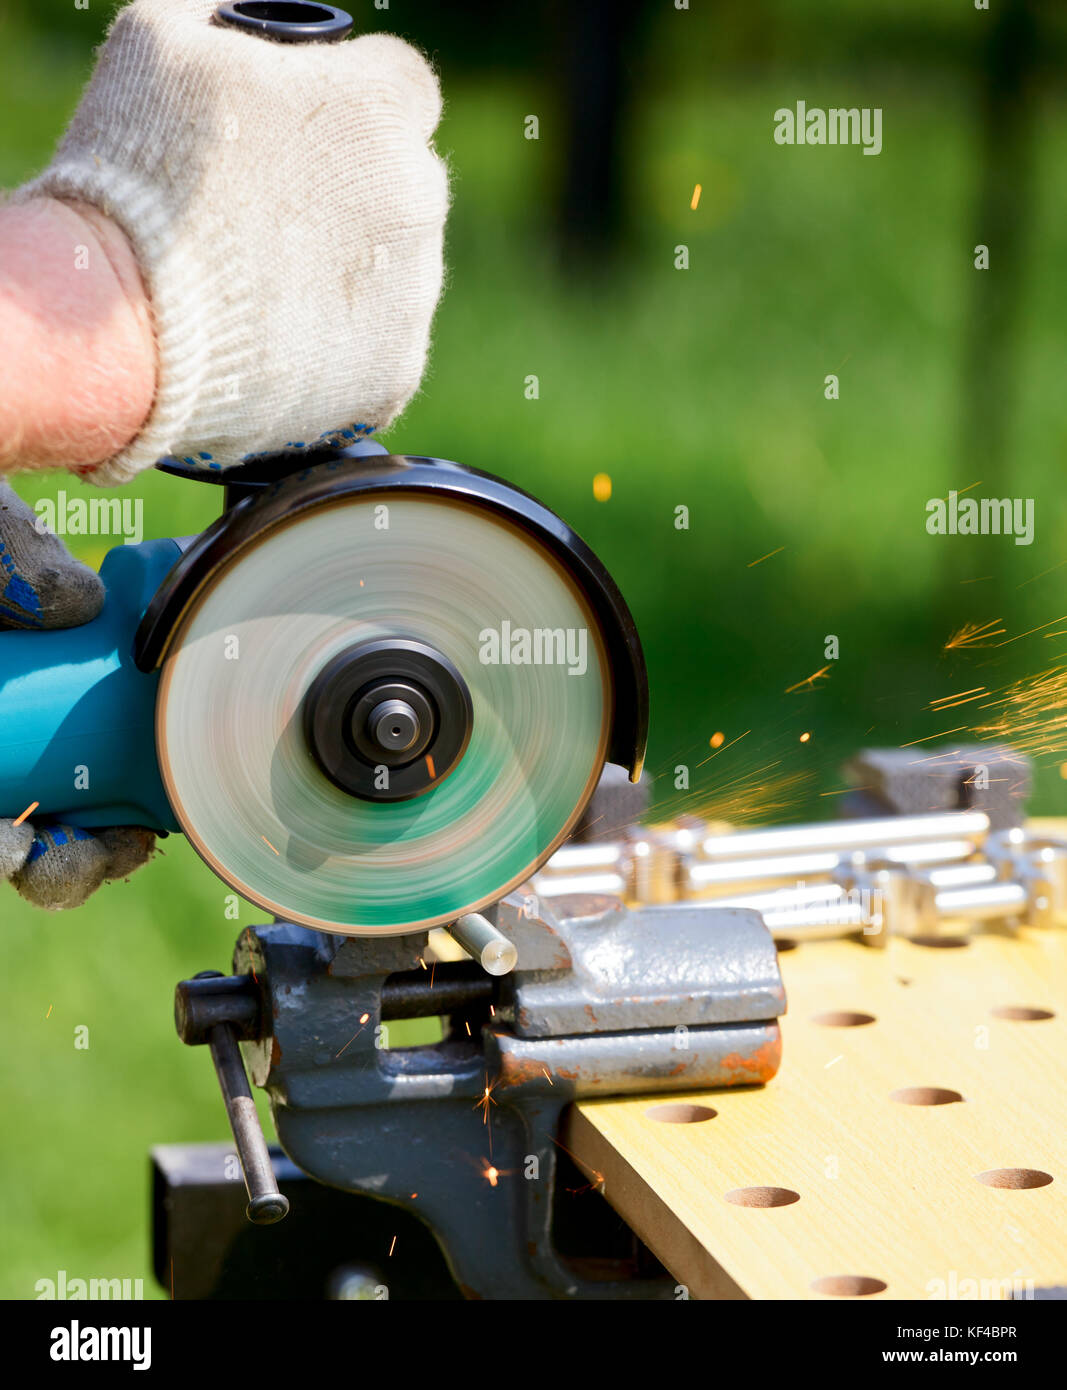 Man cutting metal with angle grinder - Stock Image